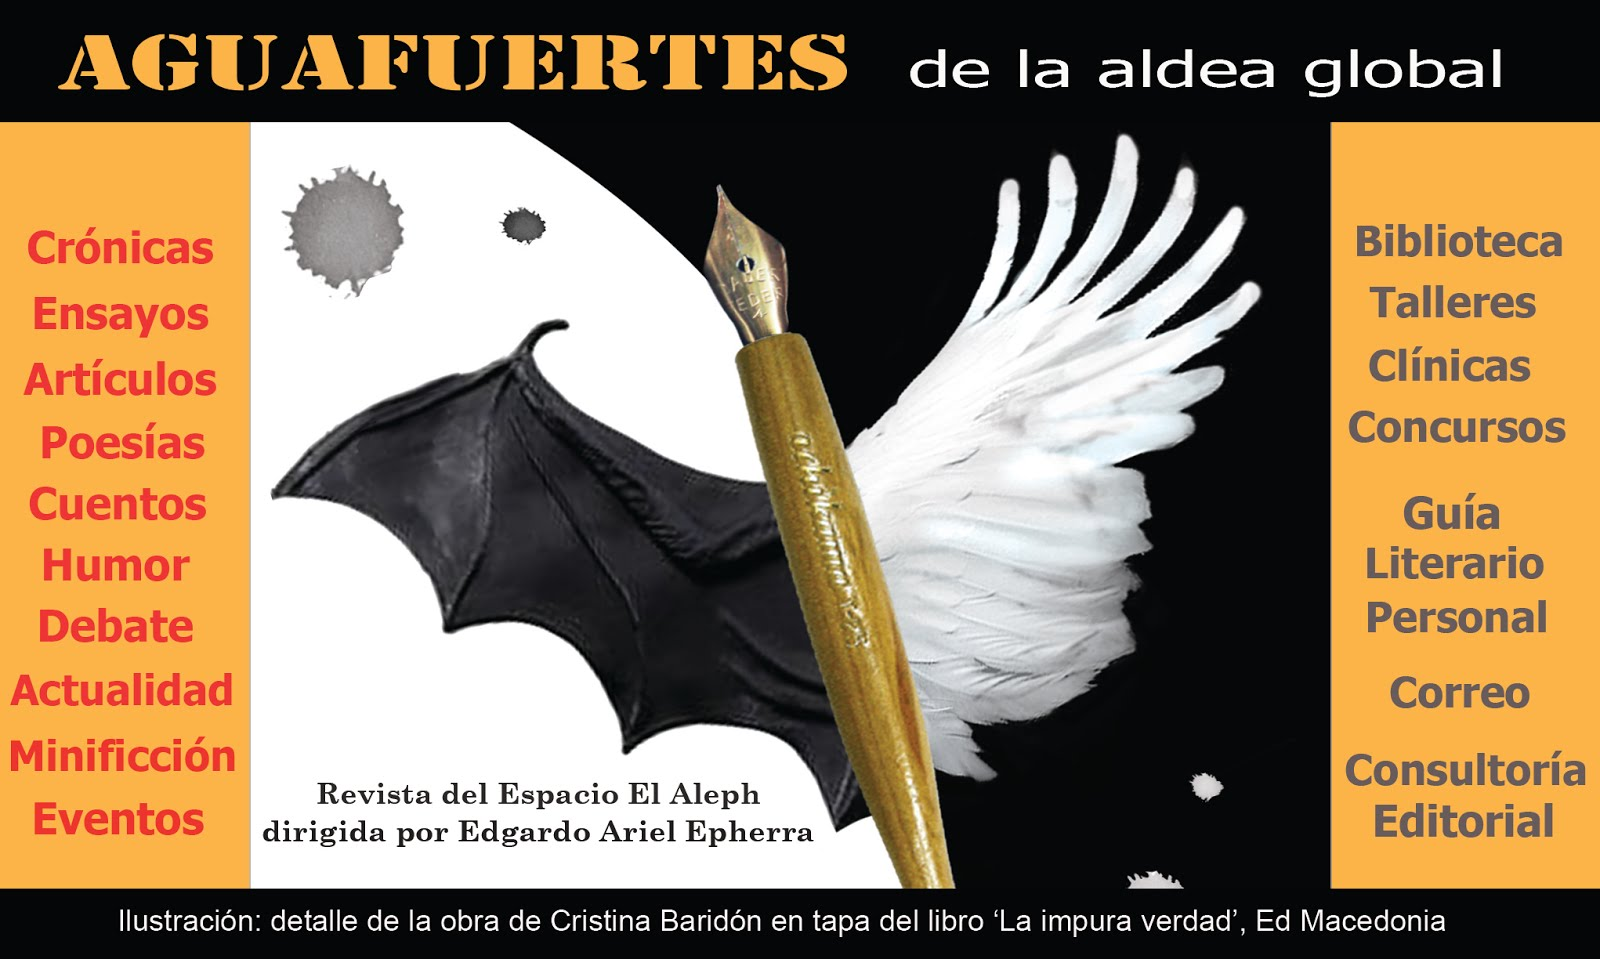 AGUAFUERTES de la aldea global